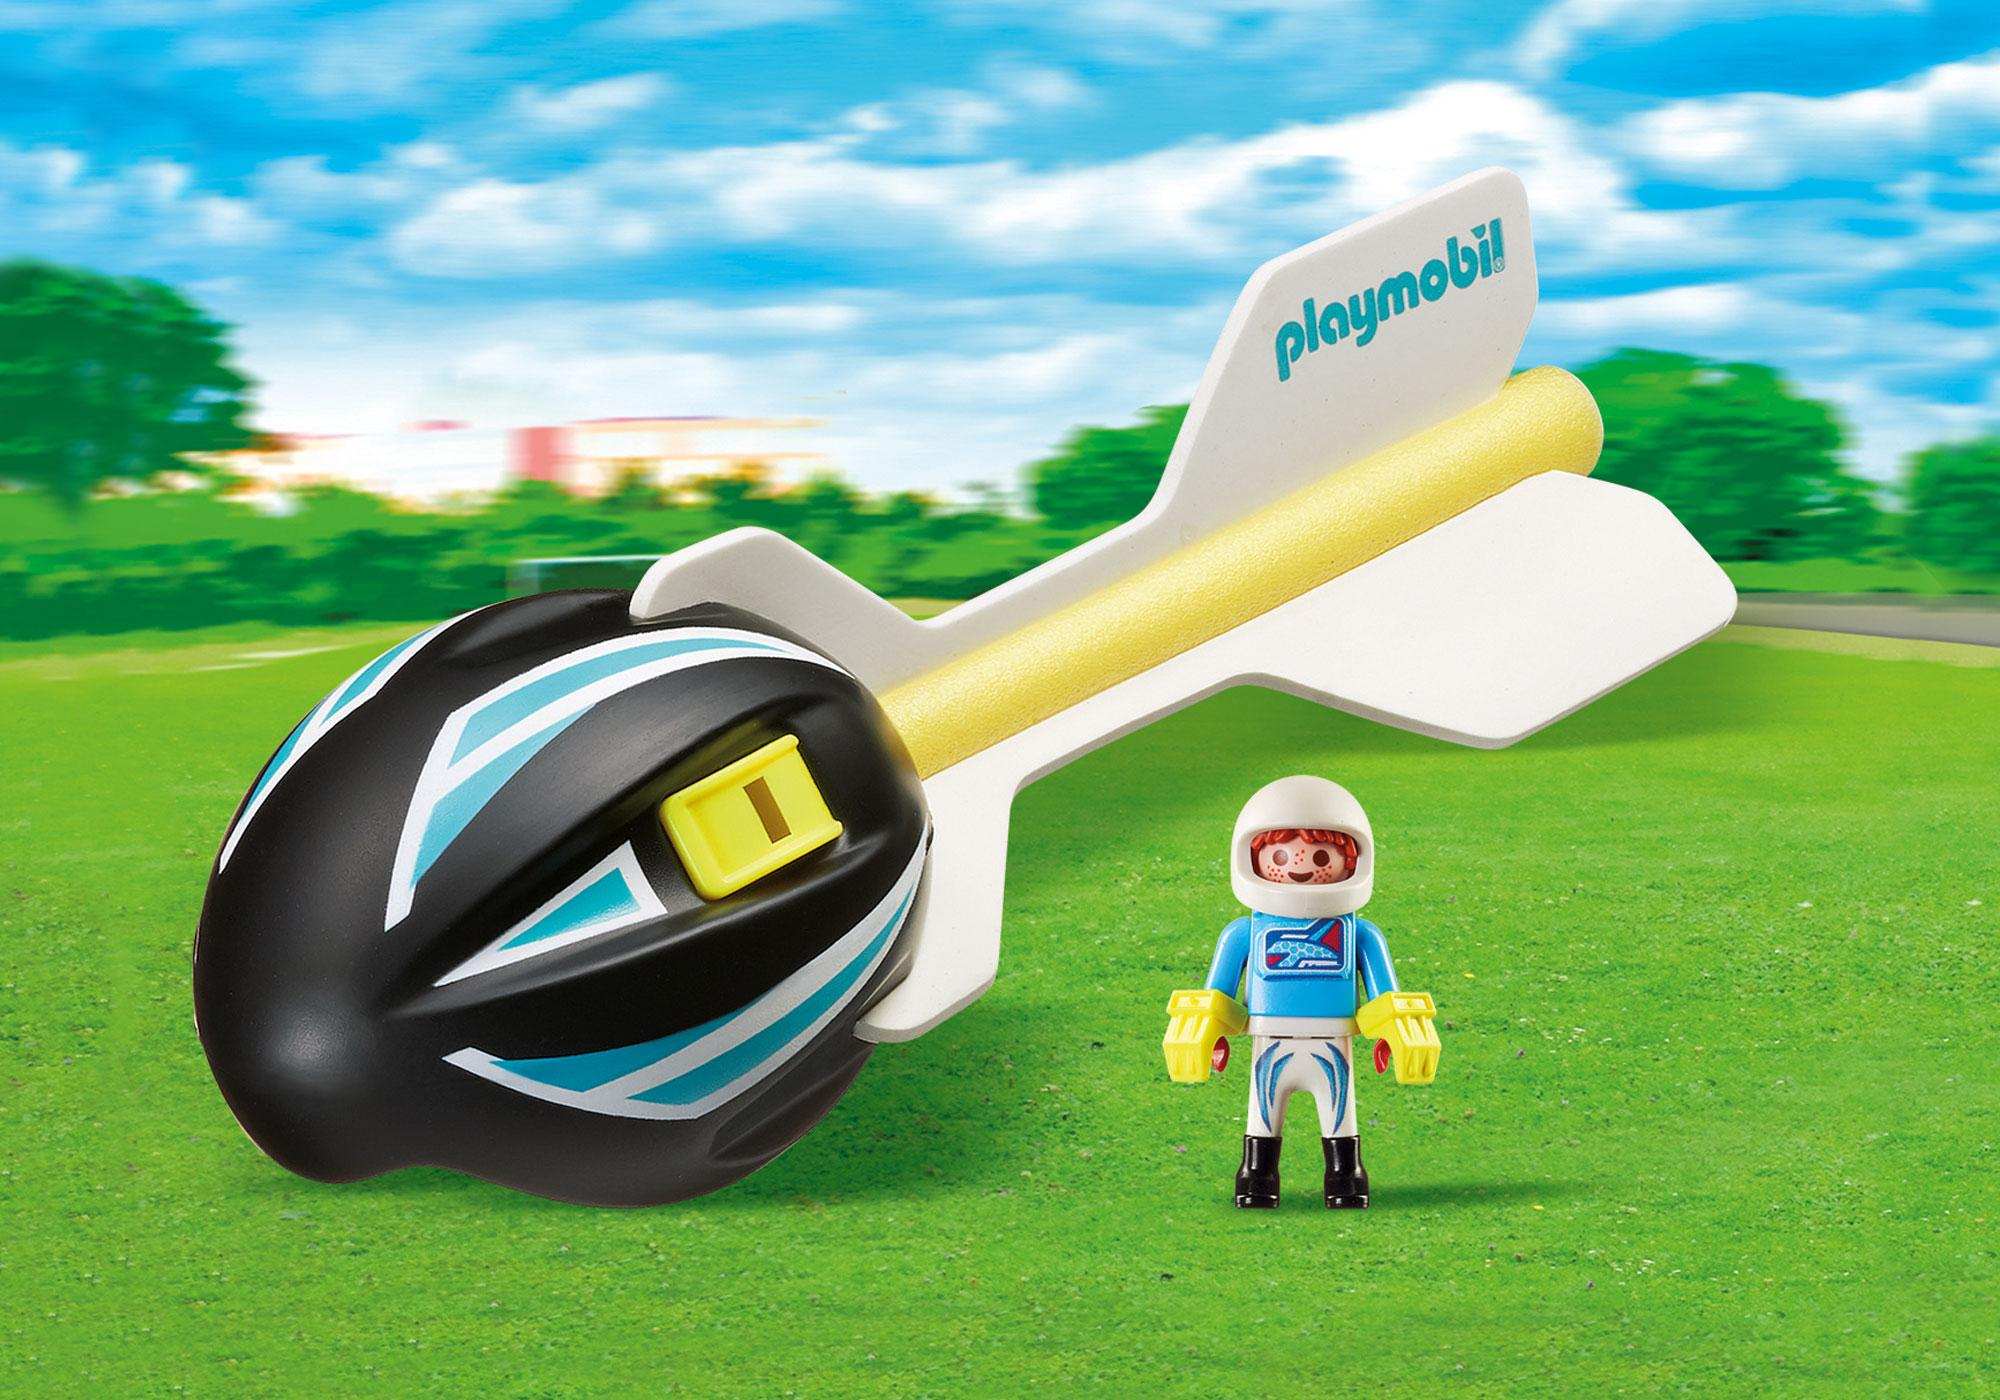 http://media.playmobil.com/i/playmobil/9374_product_extra1/Seta do Vento